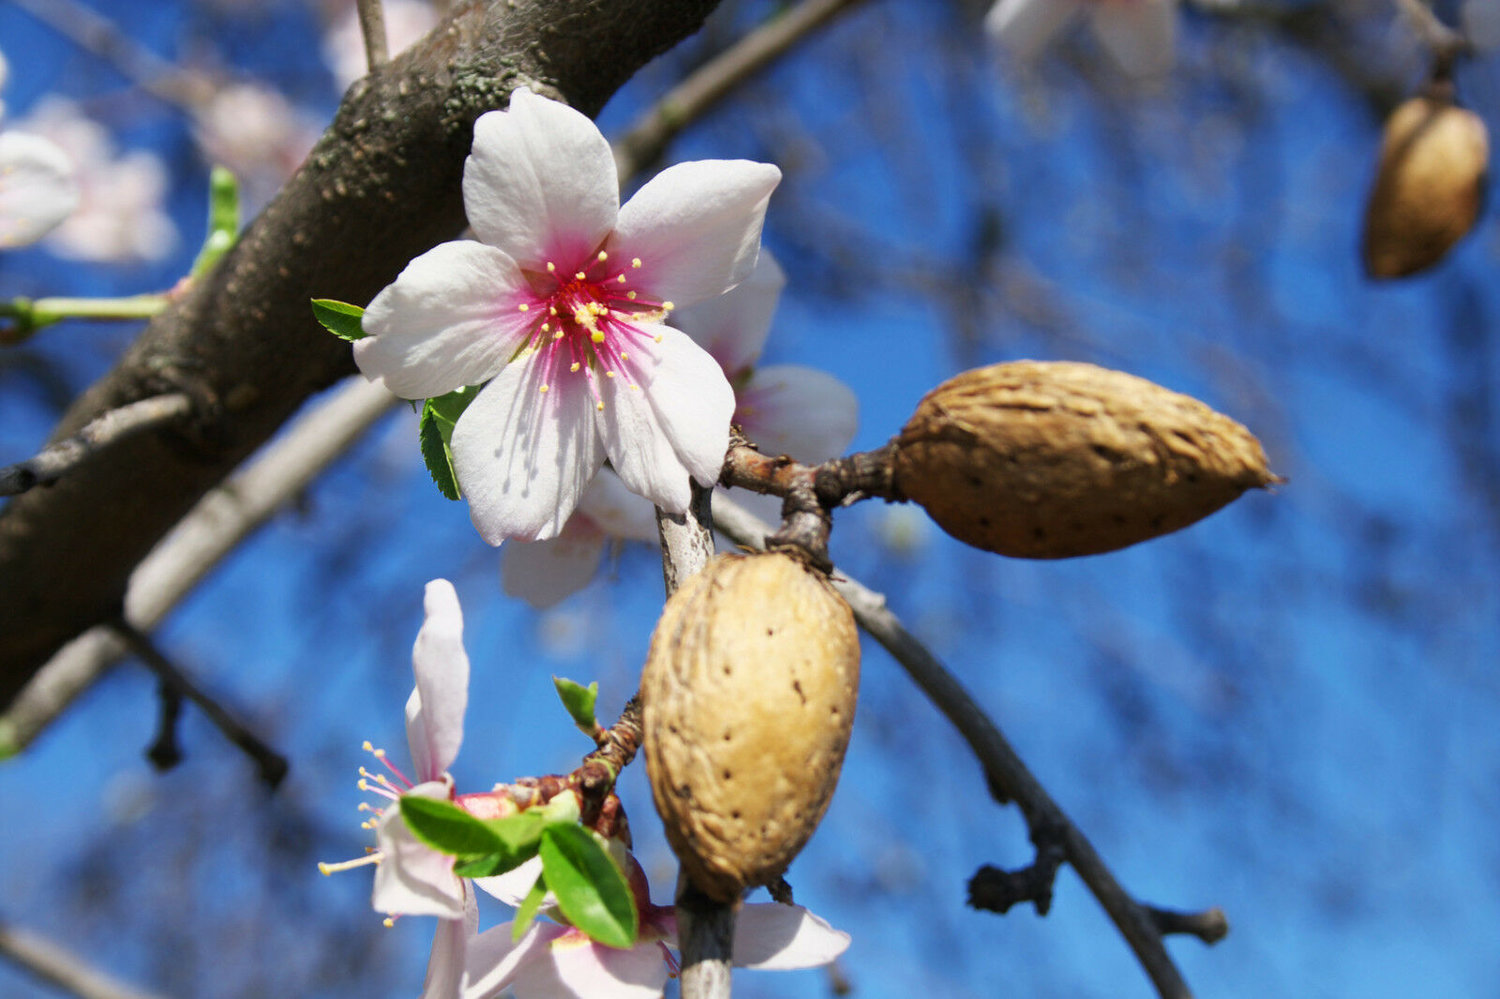 almond blossom and husk on tree.jpg